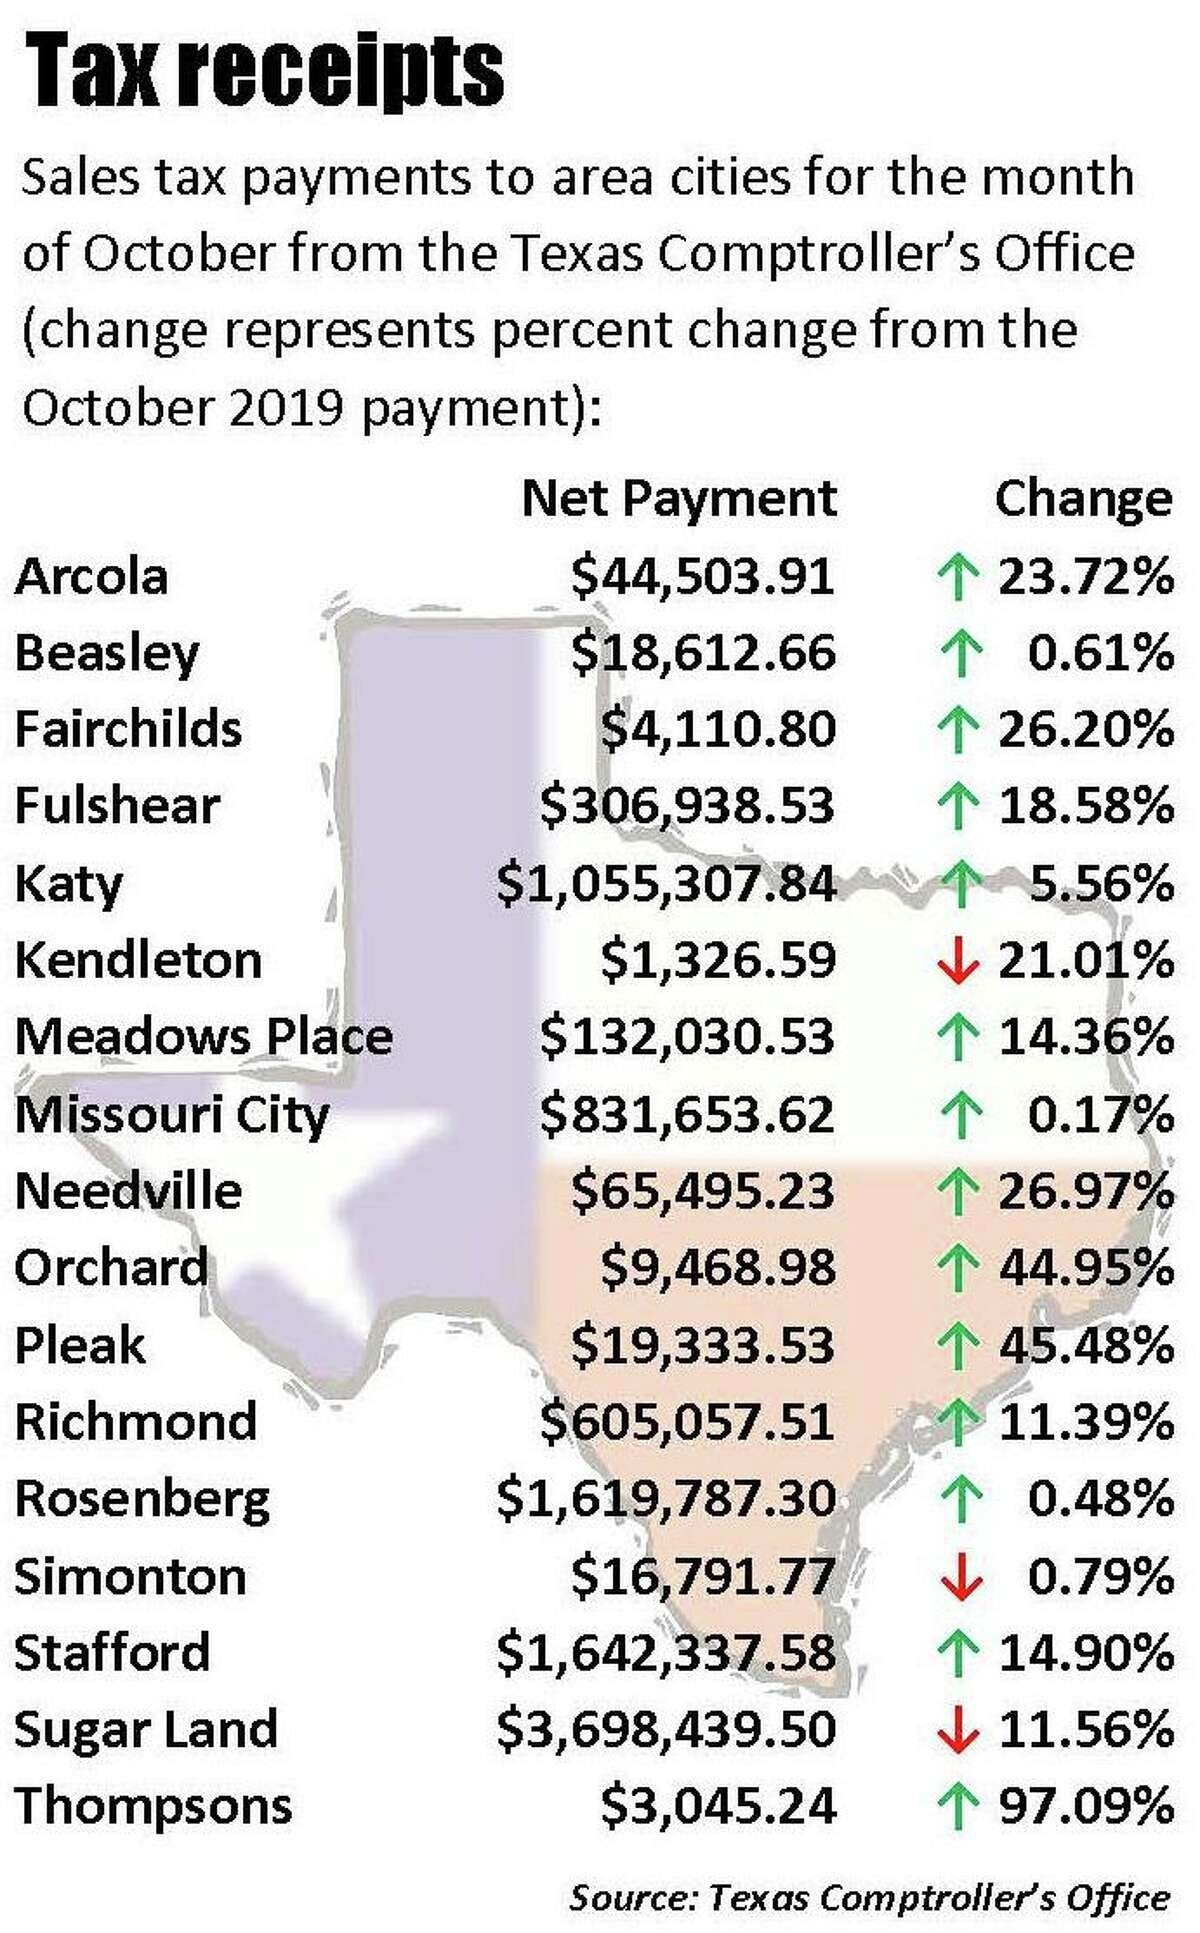 Sales tax receipts from the Texas Comptroller's Office for the month of October 2020.